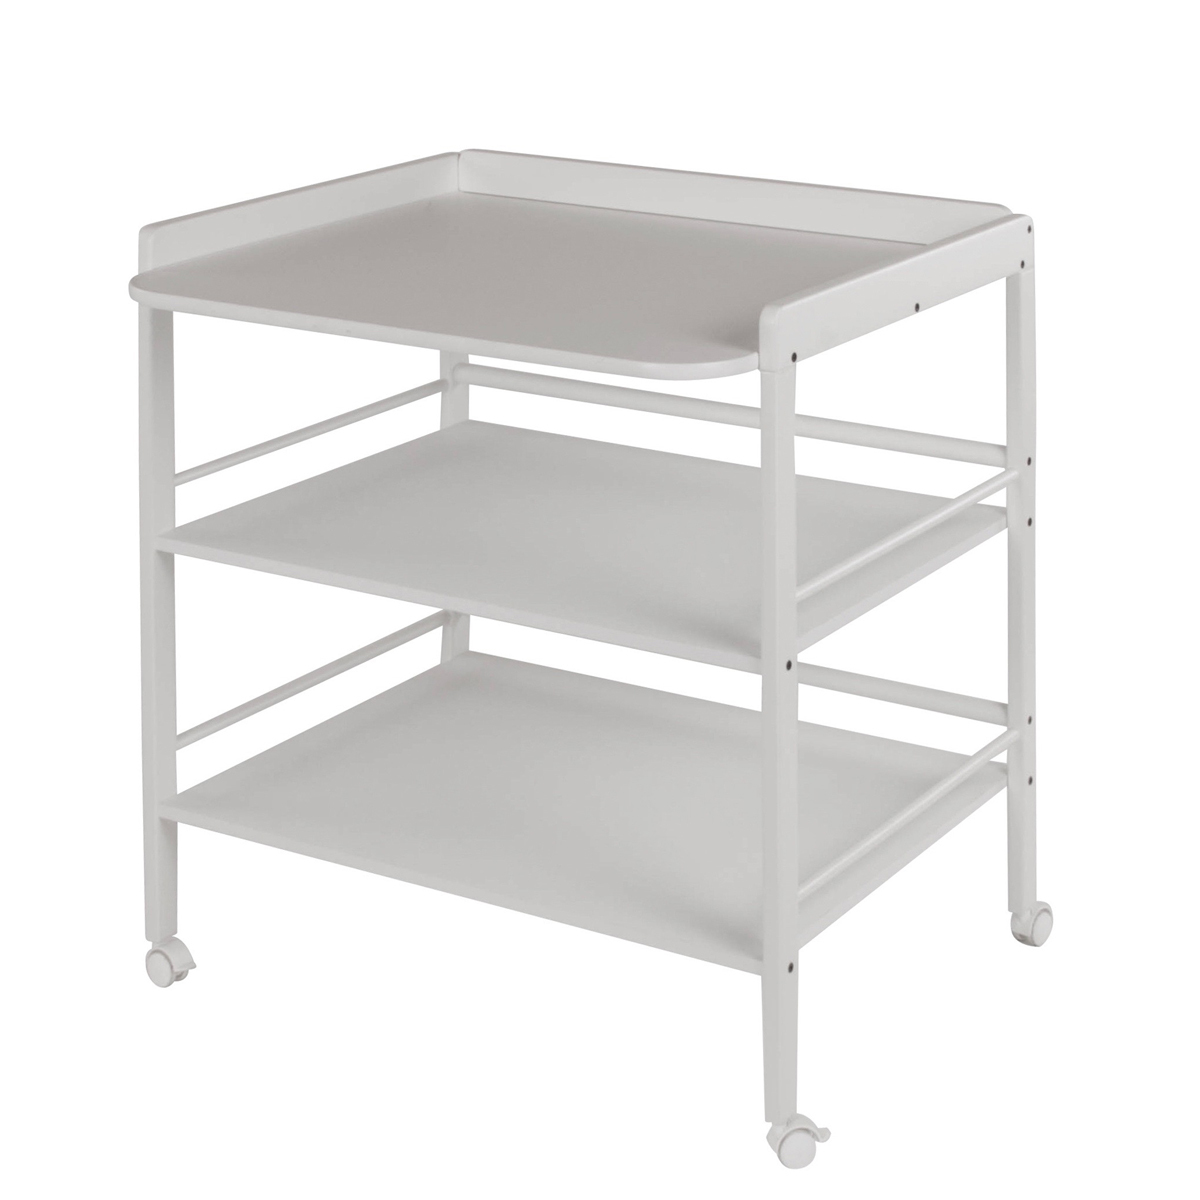 Geuther table langer clara blanc table langer - Table a langer geuther clarissa ...